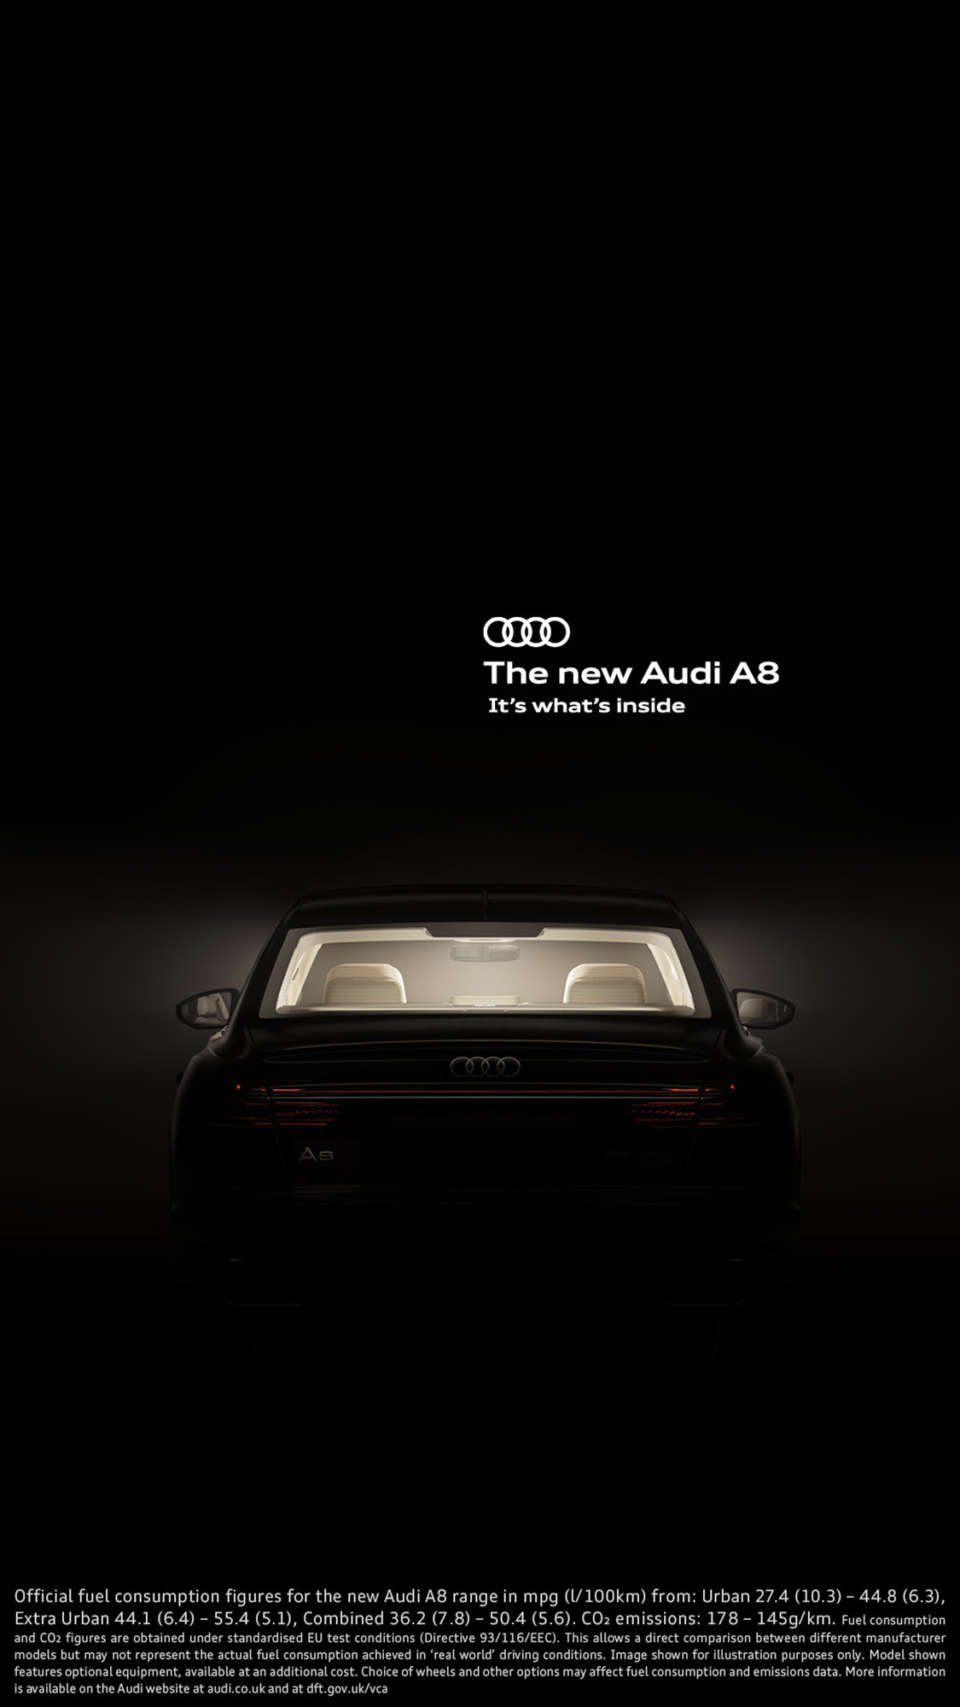 The new Audi A8 - It's what's inside